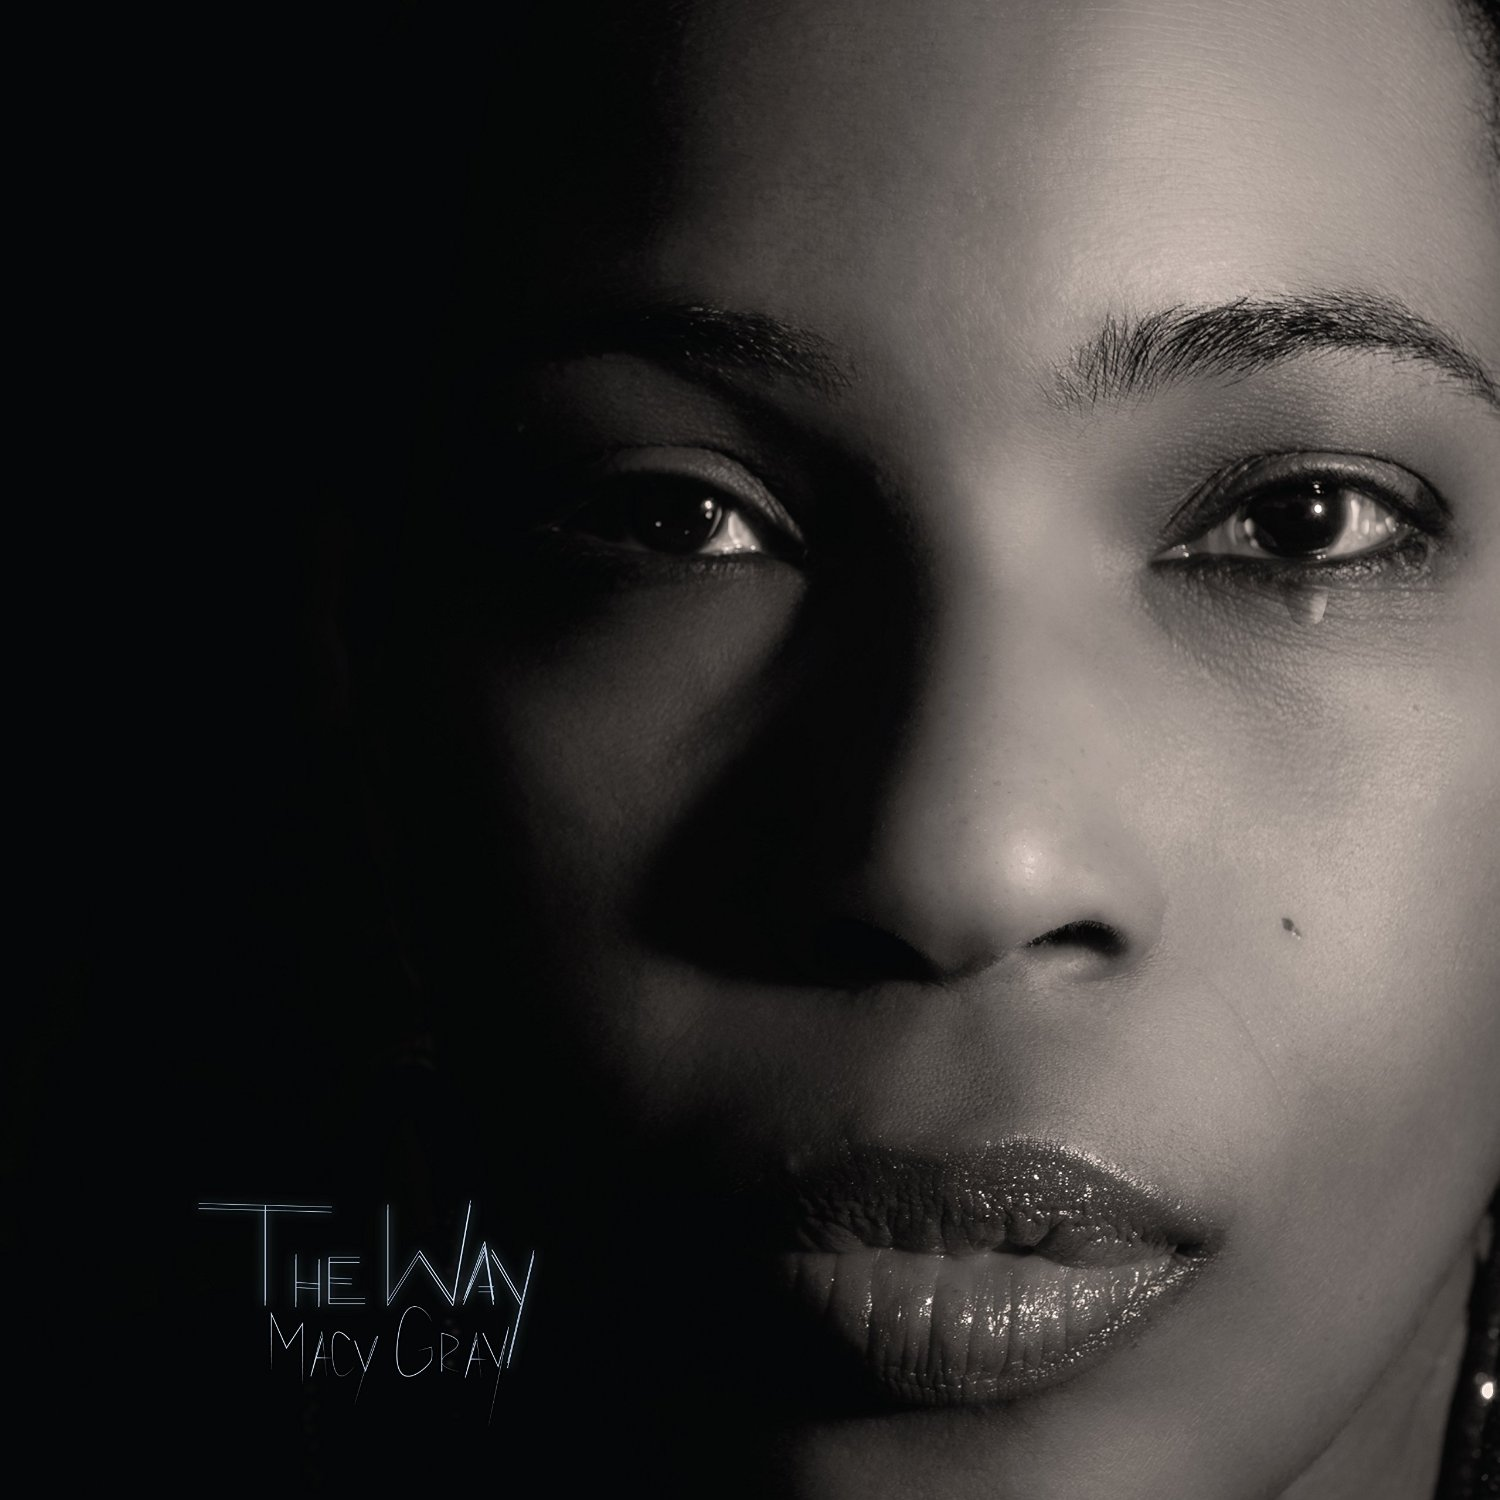 Macy Gray Stays On the Grind on 'The Way'